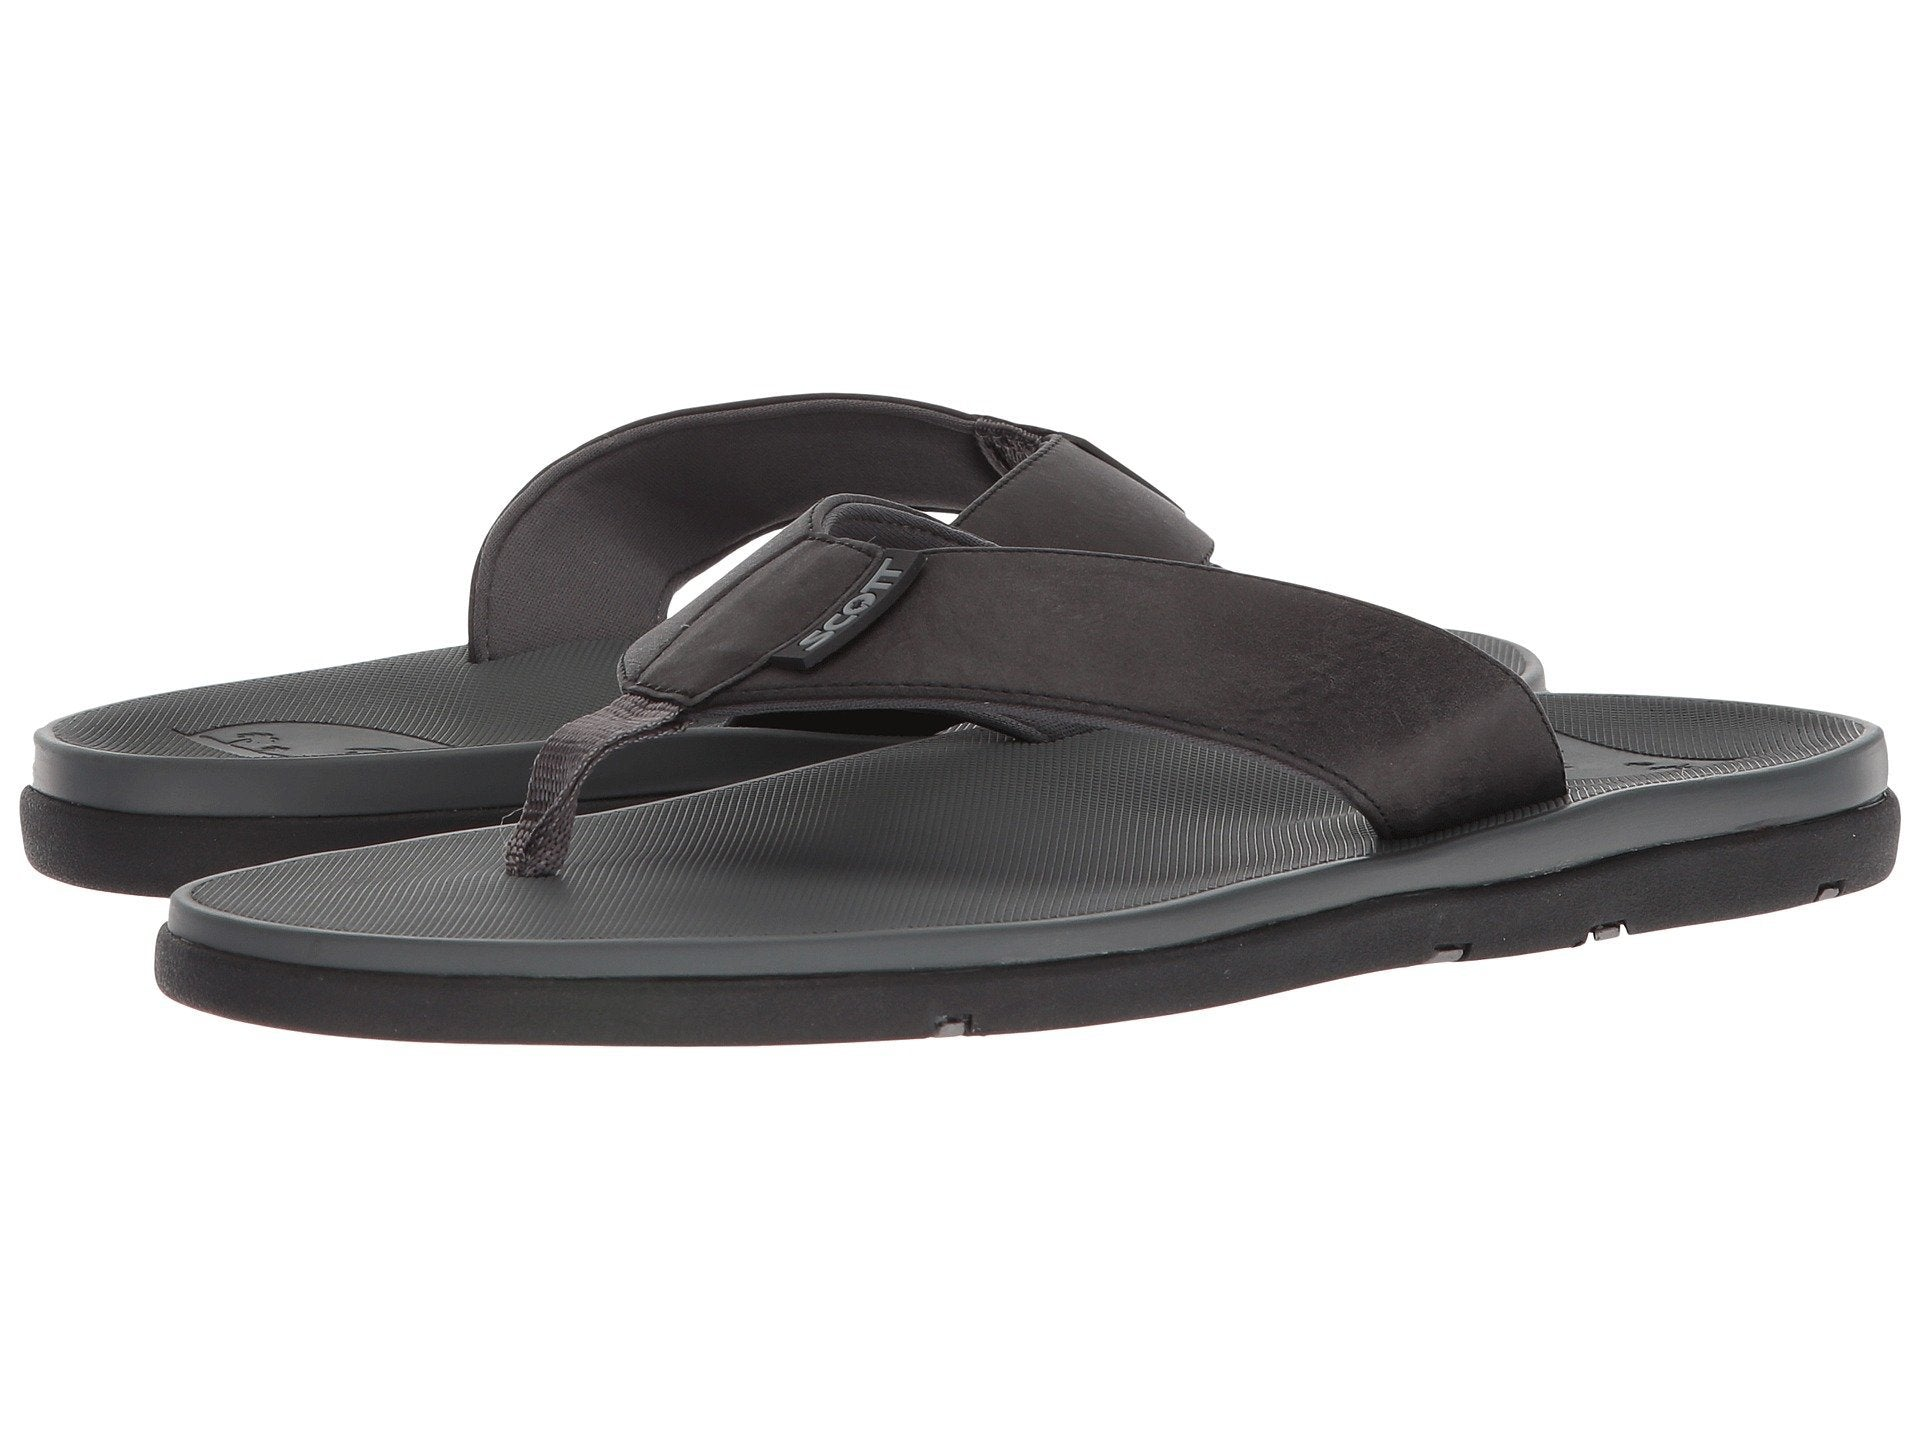 Hikino Sophisticated Smoke Black Vegan Leather Sandal - AlohaShoes.com